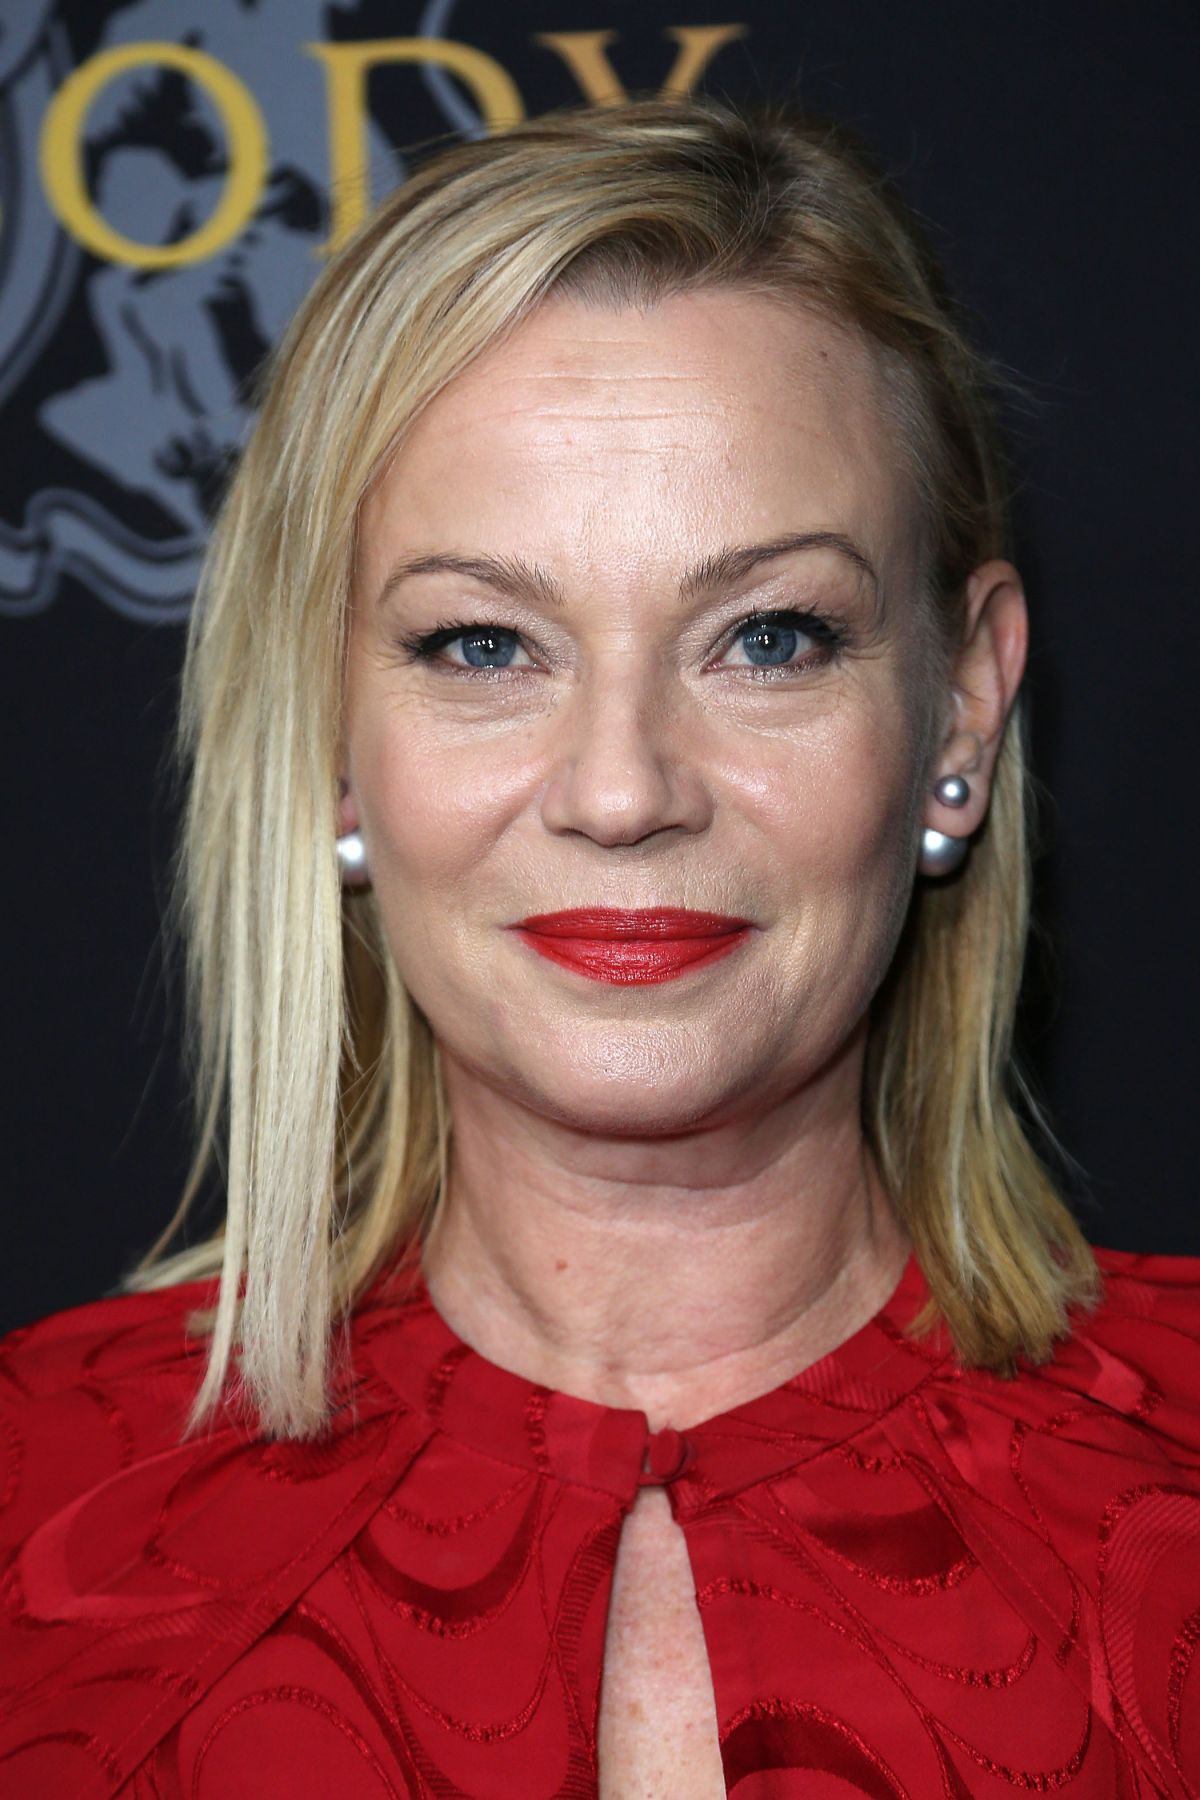 SAMANTHA MATHIS at Bohemian Rhapsody Premiere in New York